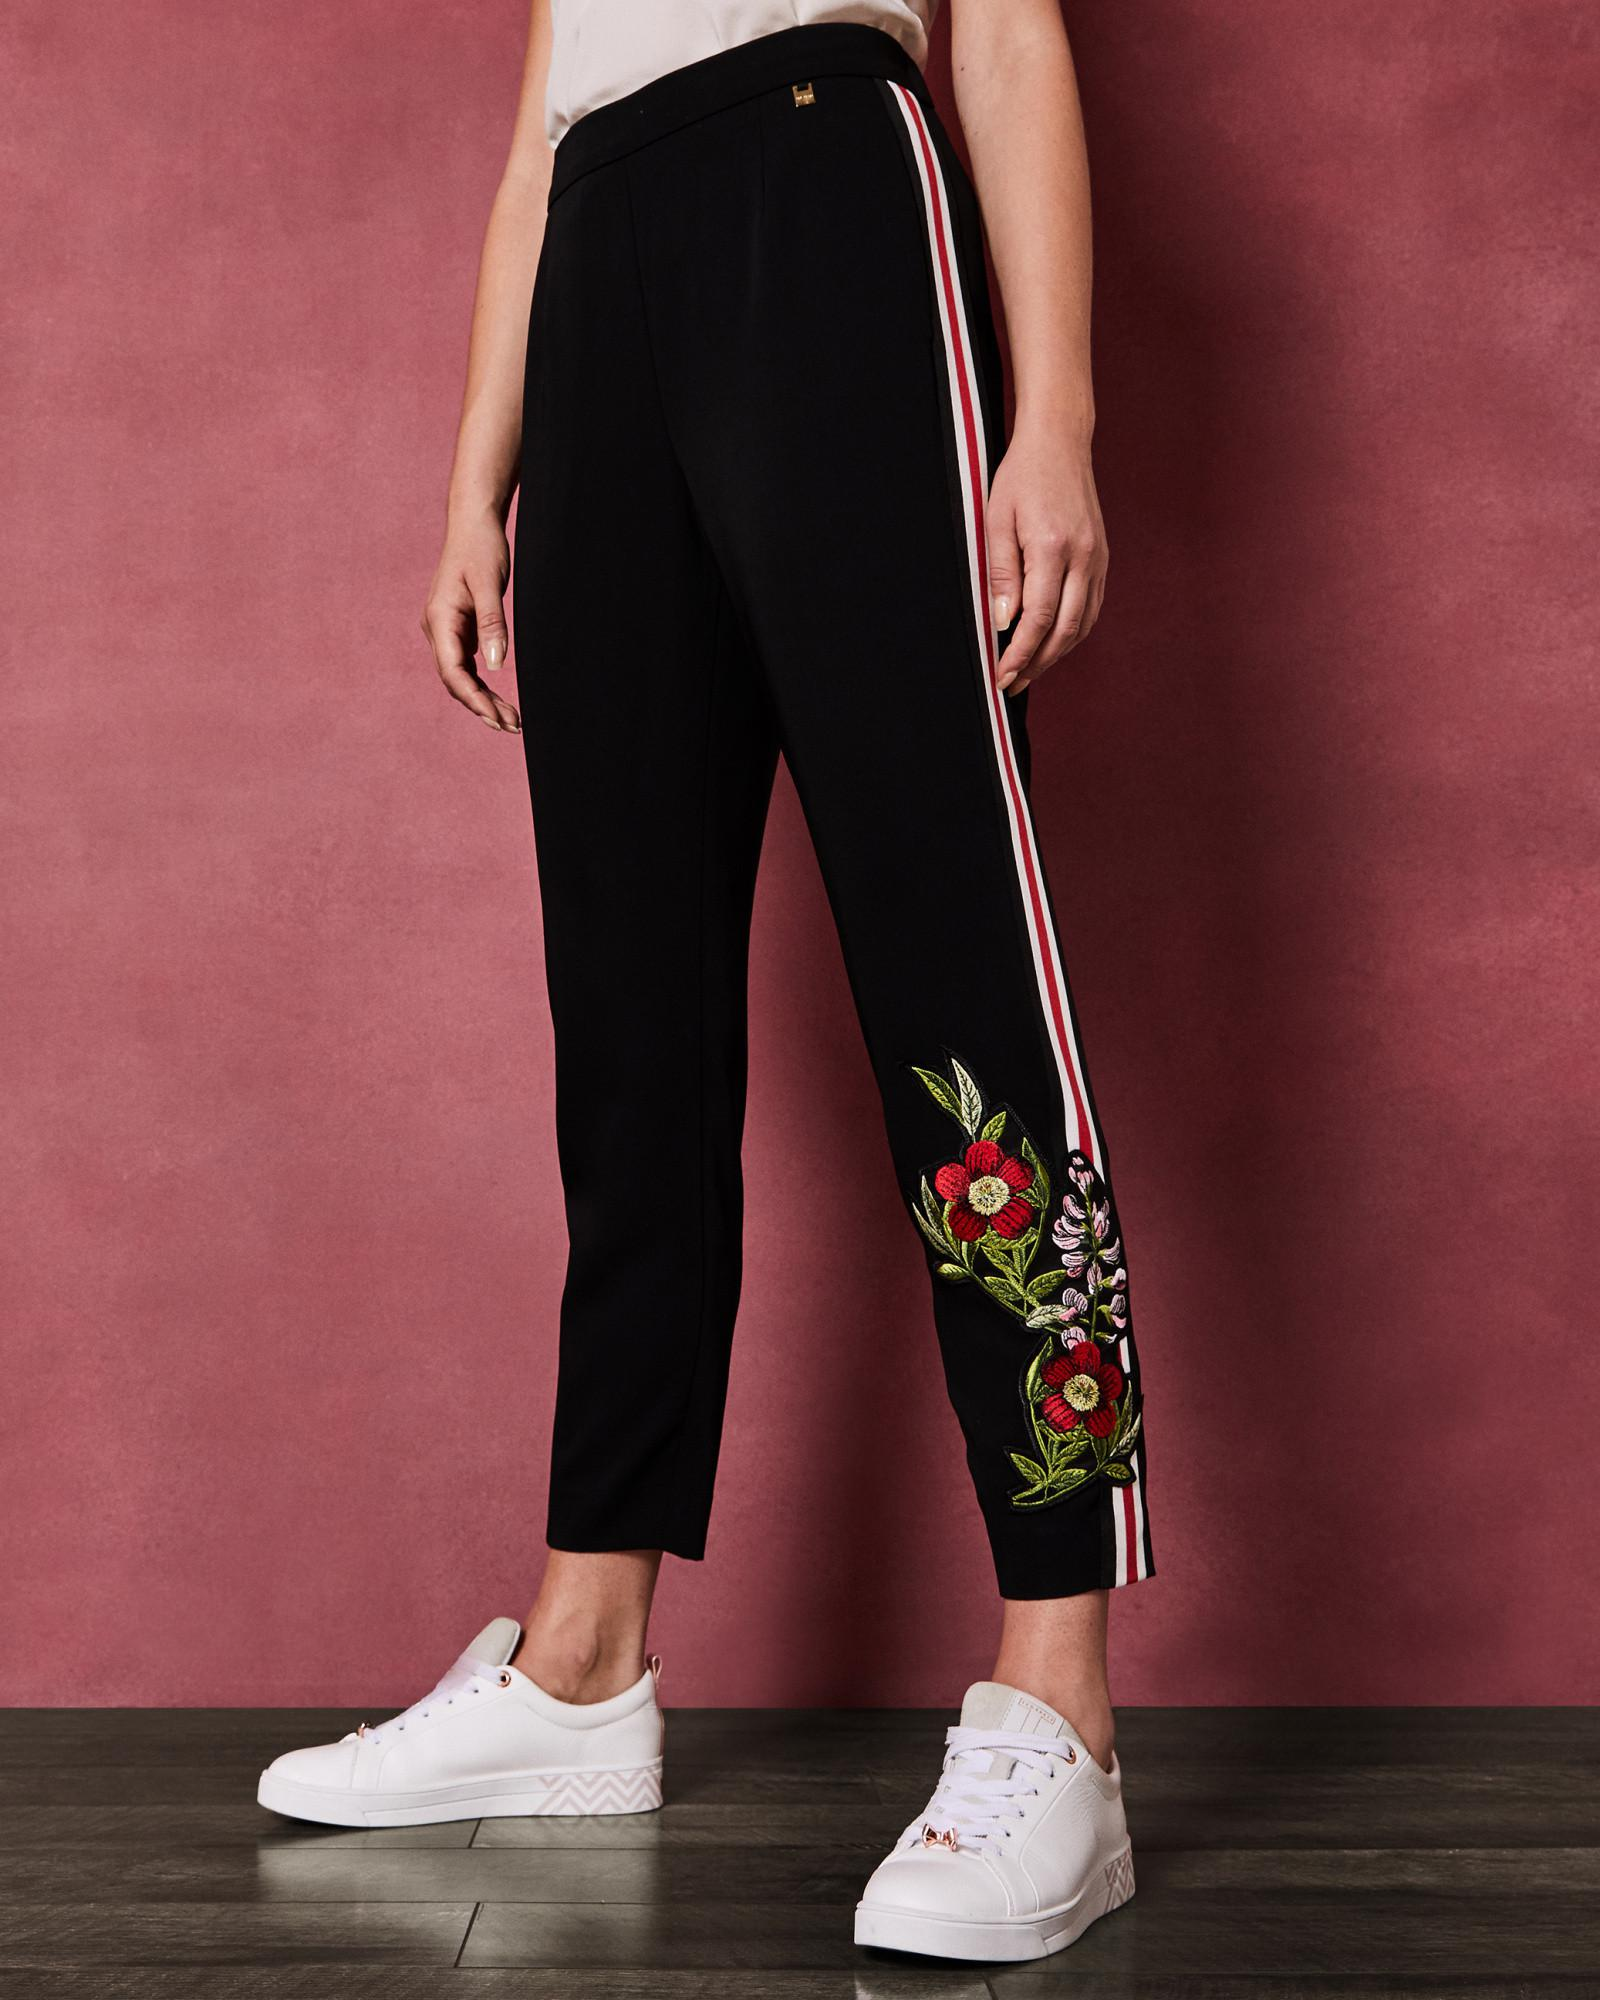 431fc1e0ac61 Ted Baker Floral Detail Trousers in Black - Lyst